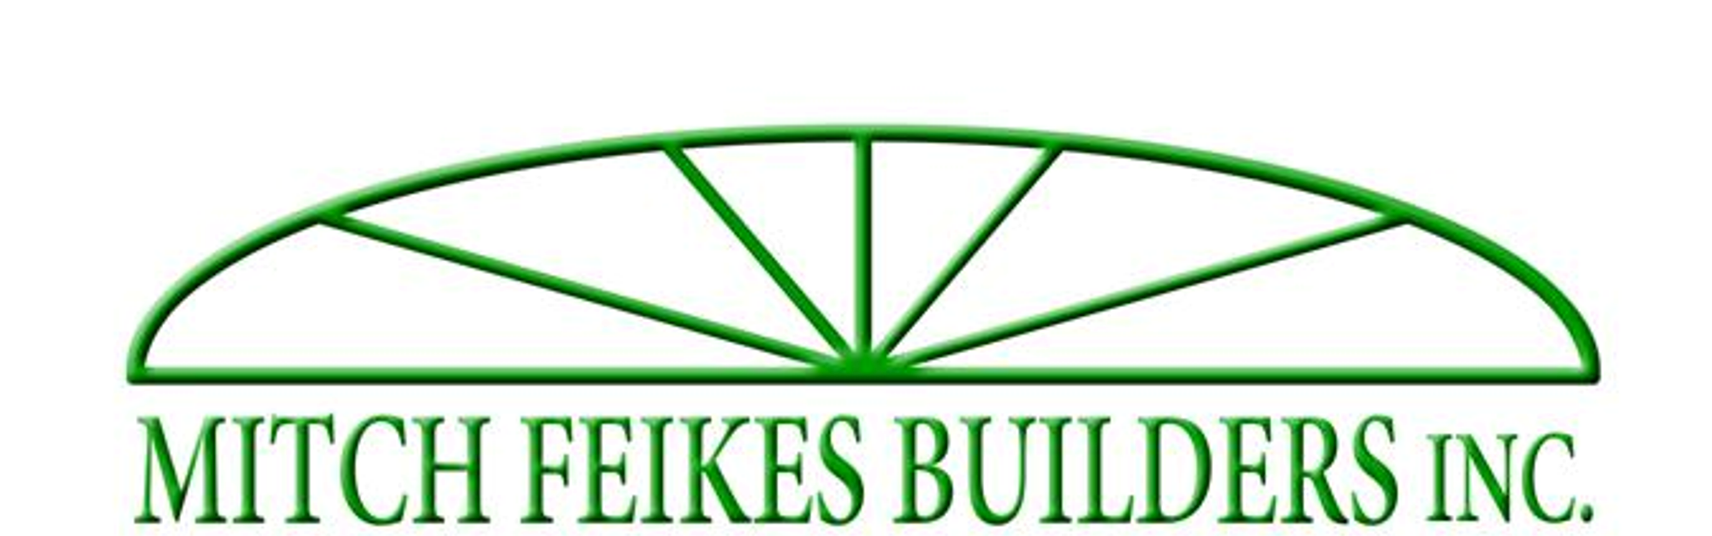 Mitch Feikes Builders